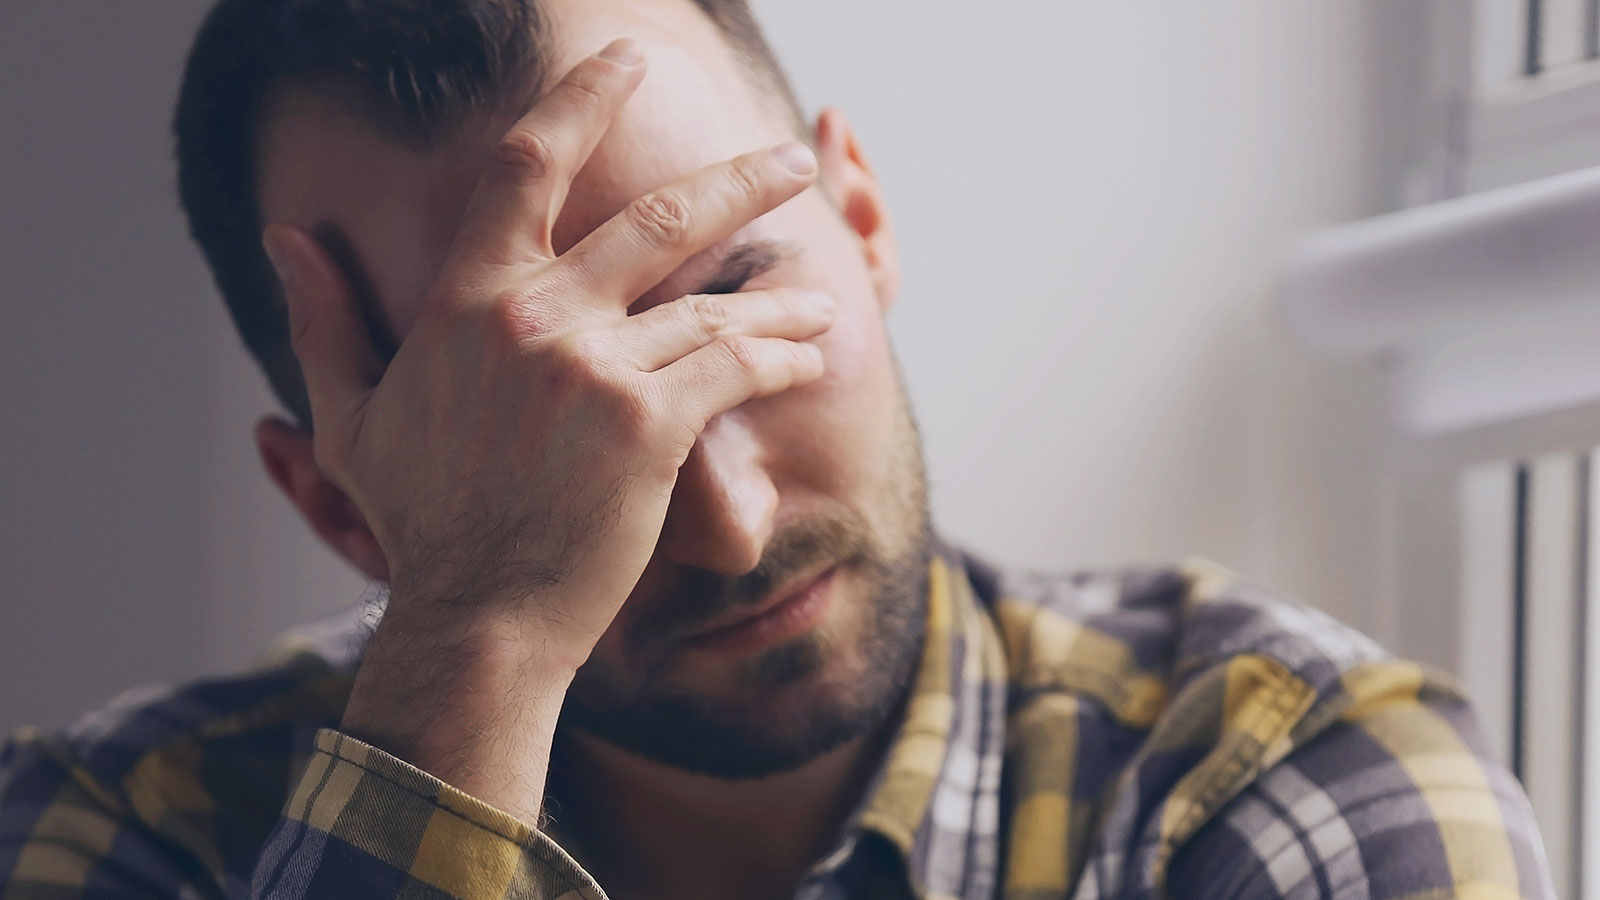 This is exactly how overthinking is damaging your well-being